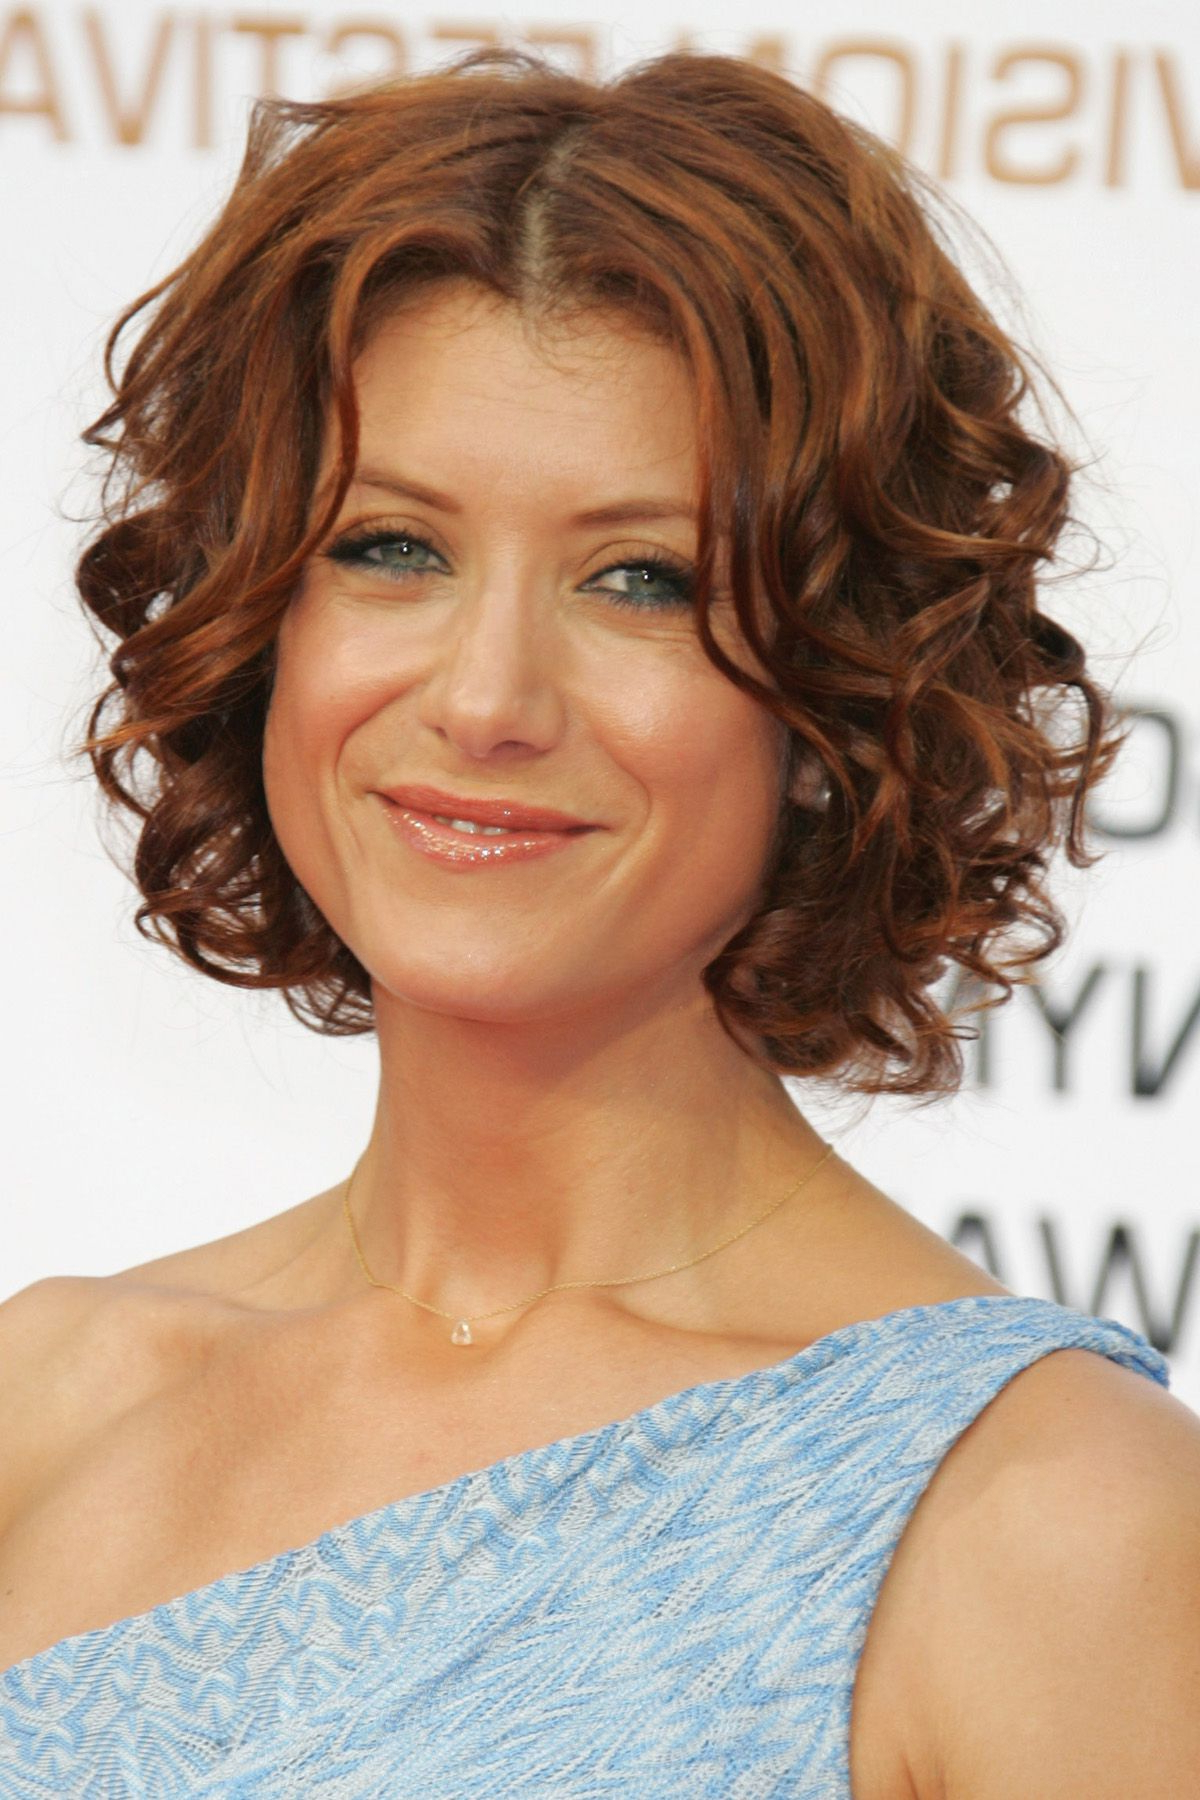 14 Best Short Curly Hairstyles For Women – Short Haircuts For Curly Hair With Feminine Shorter Hairstyles For Curly Hair (View 9 of 20)